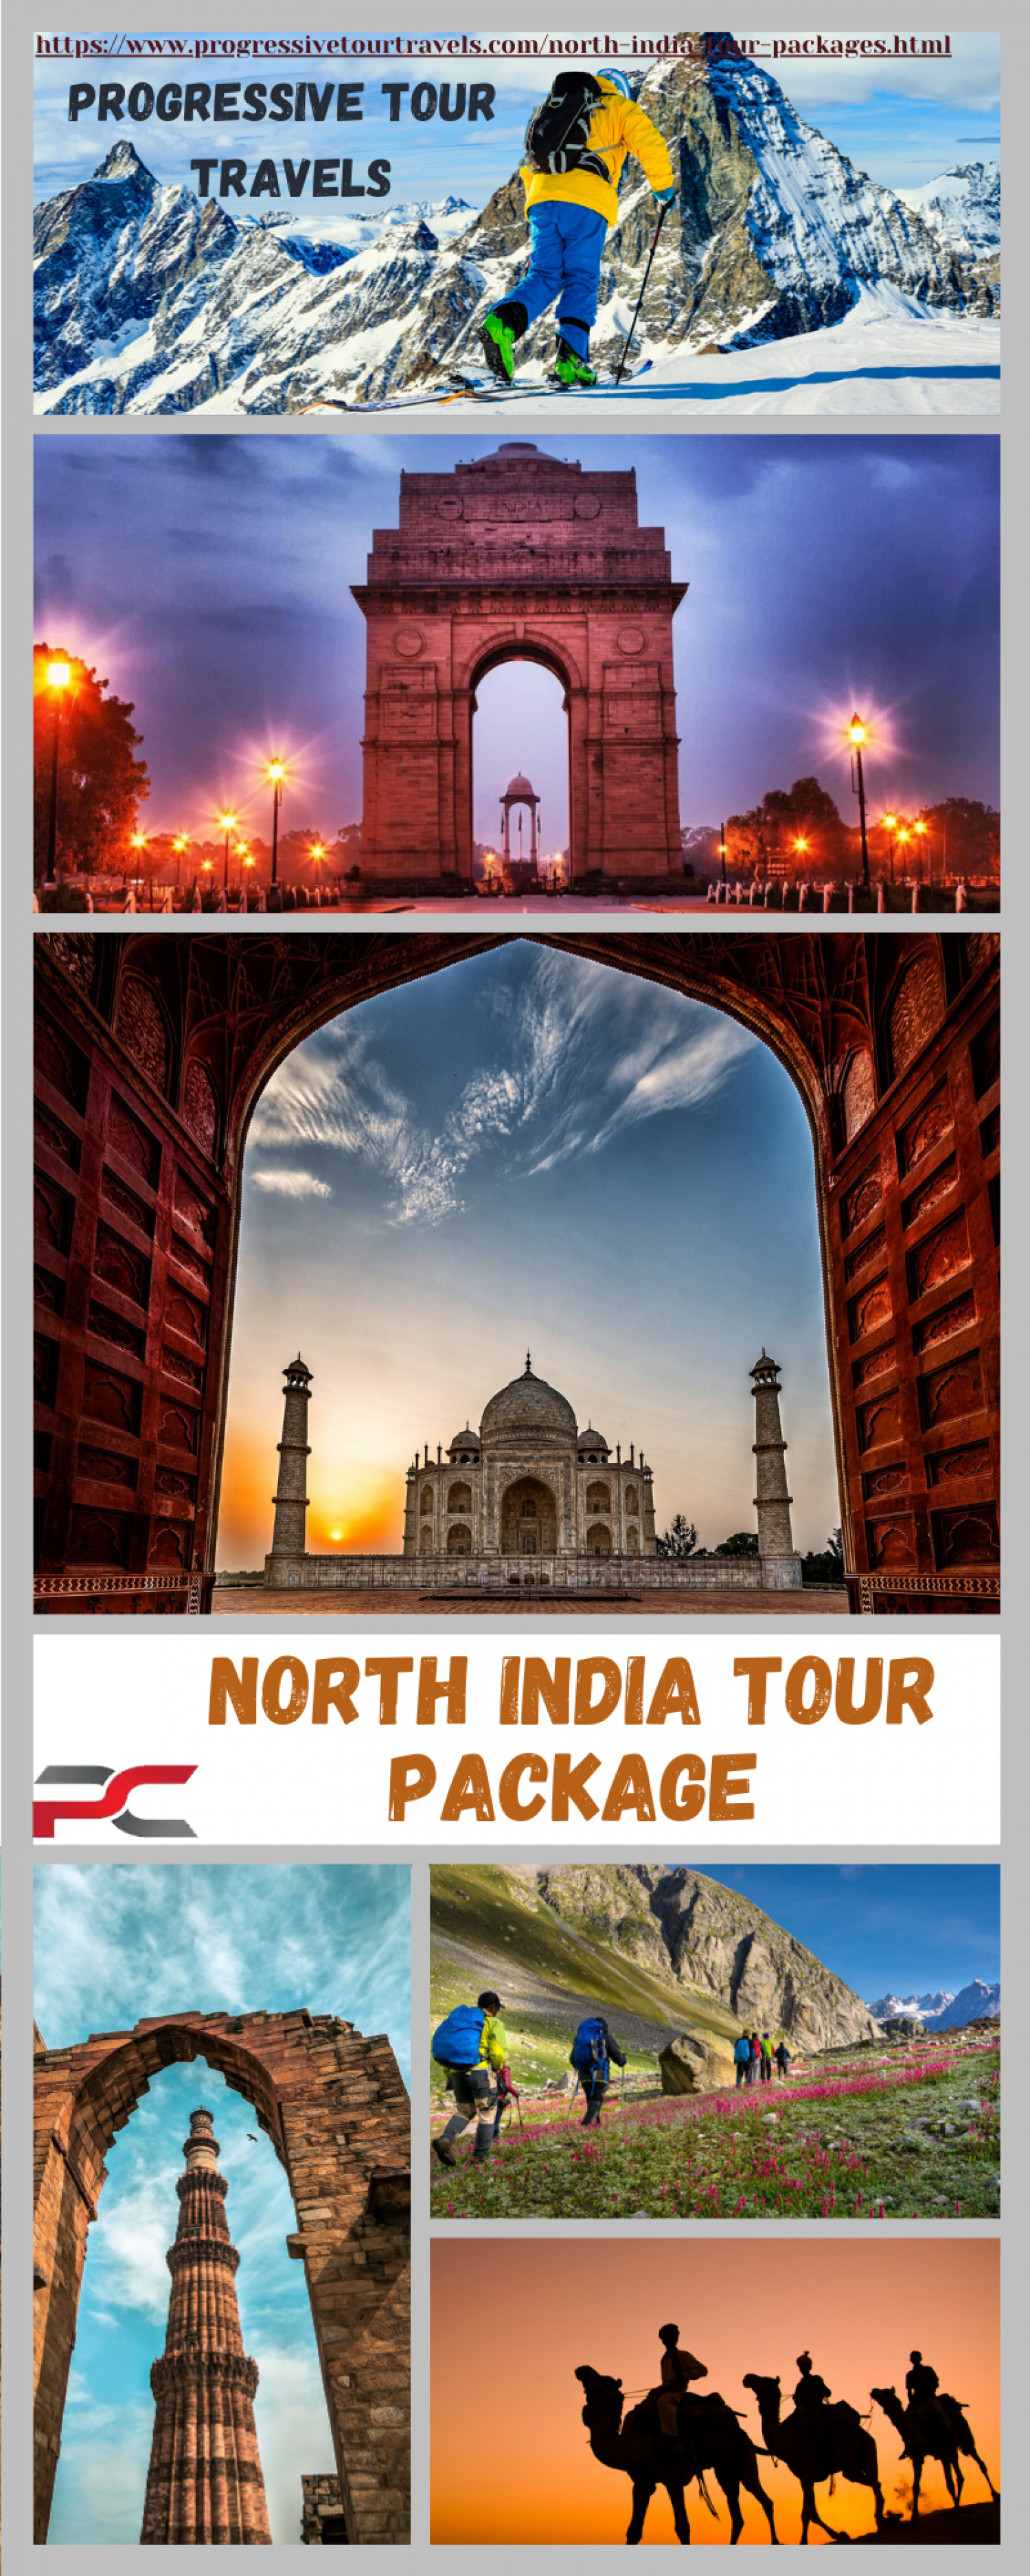 North India tour packages Infographic